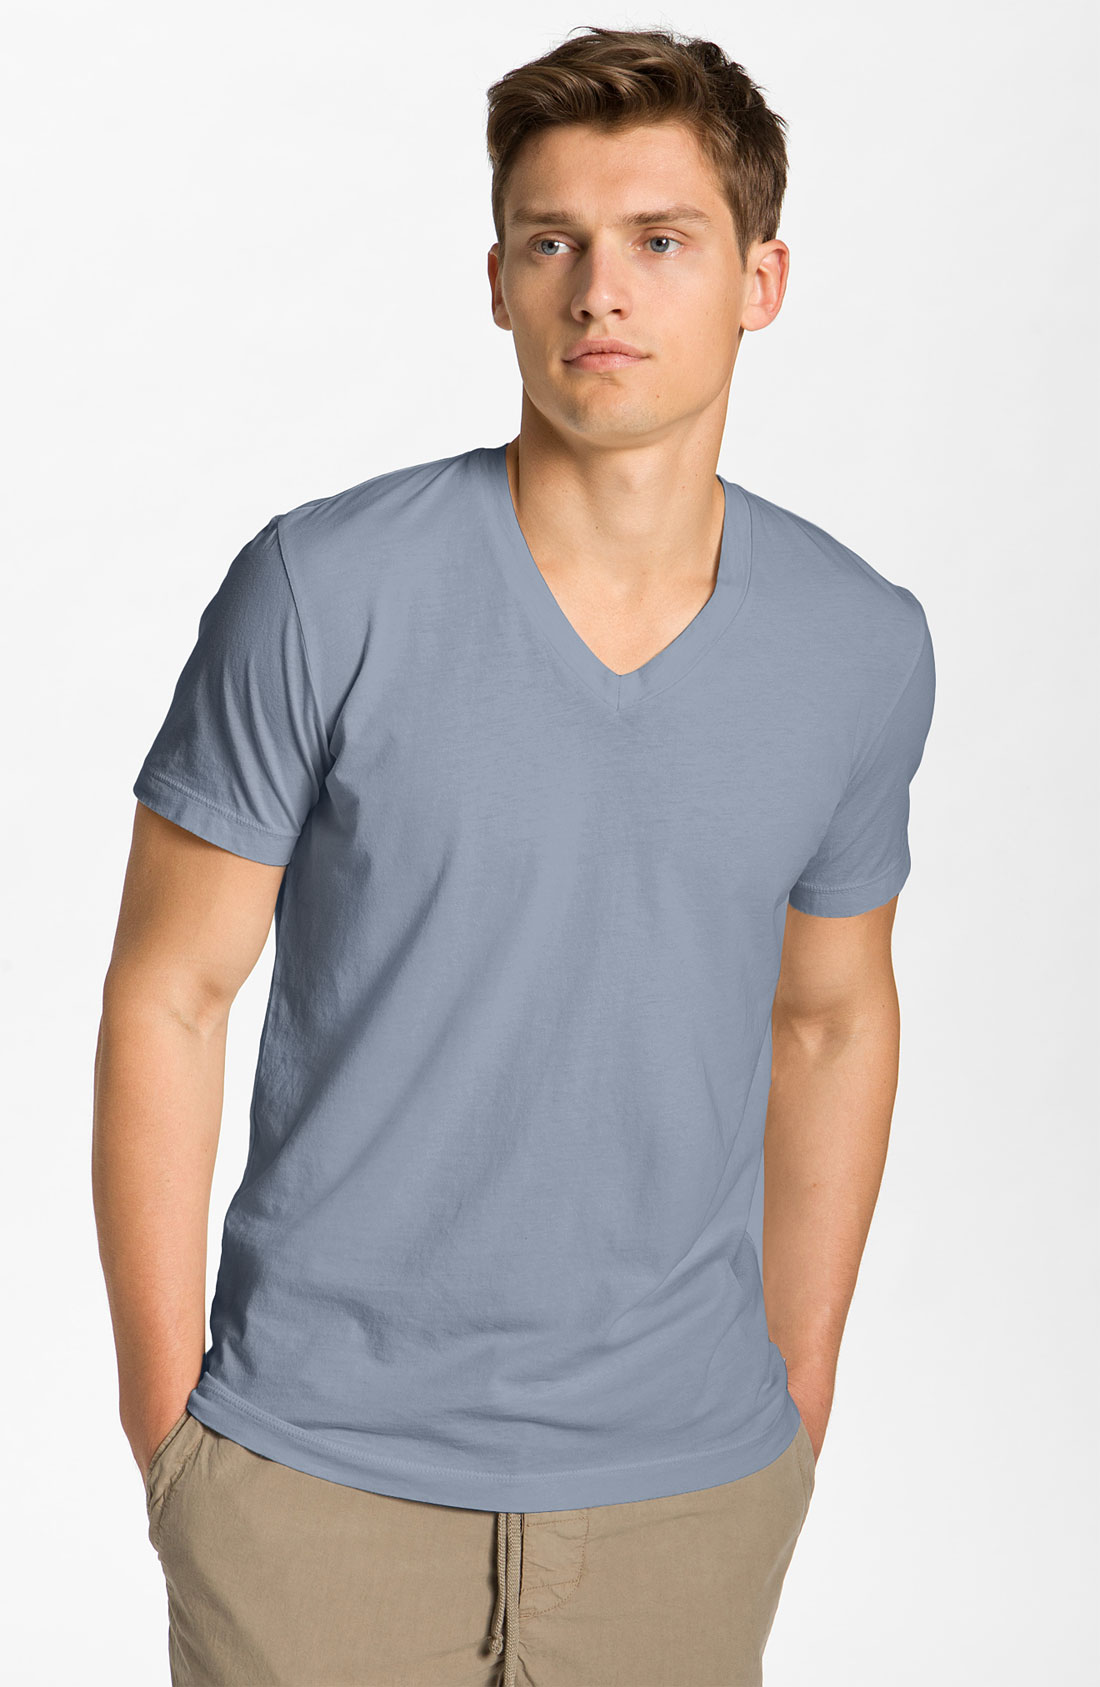 James perse jersey vneck tshirt in blue for men north for James perse t shirts sale